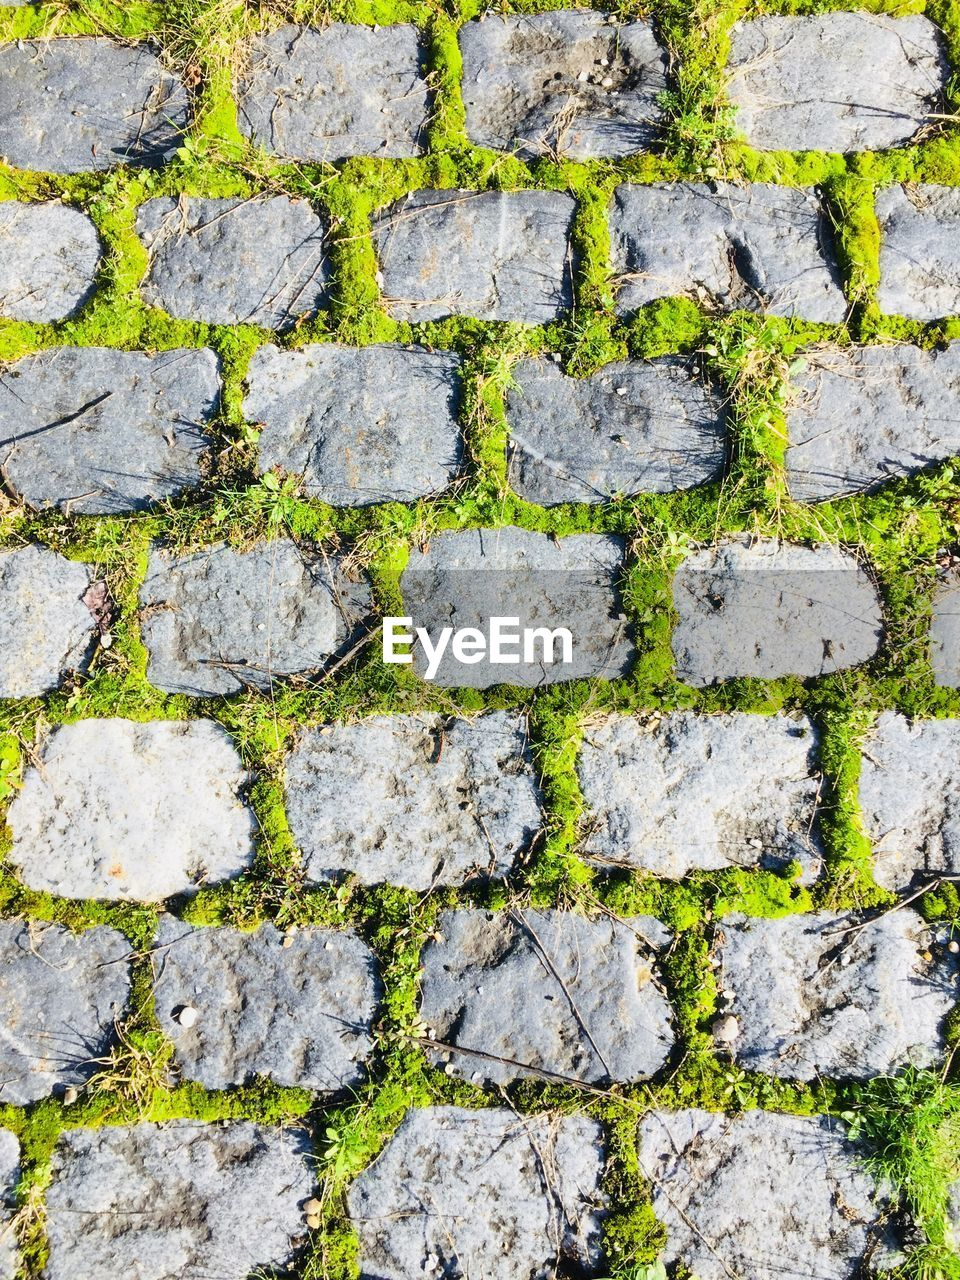 full frame, stone tile, backgrounds, day, moss, no people, outdoors, textured, close-up